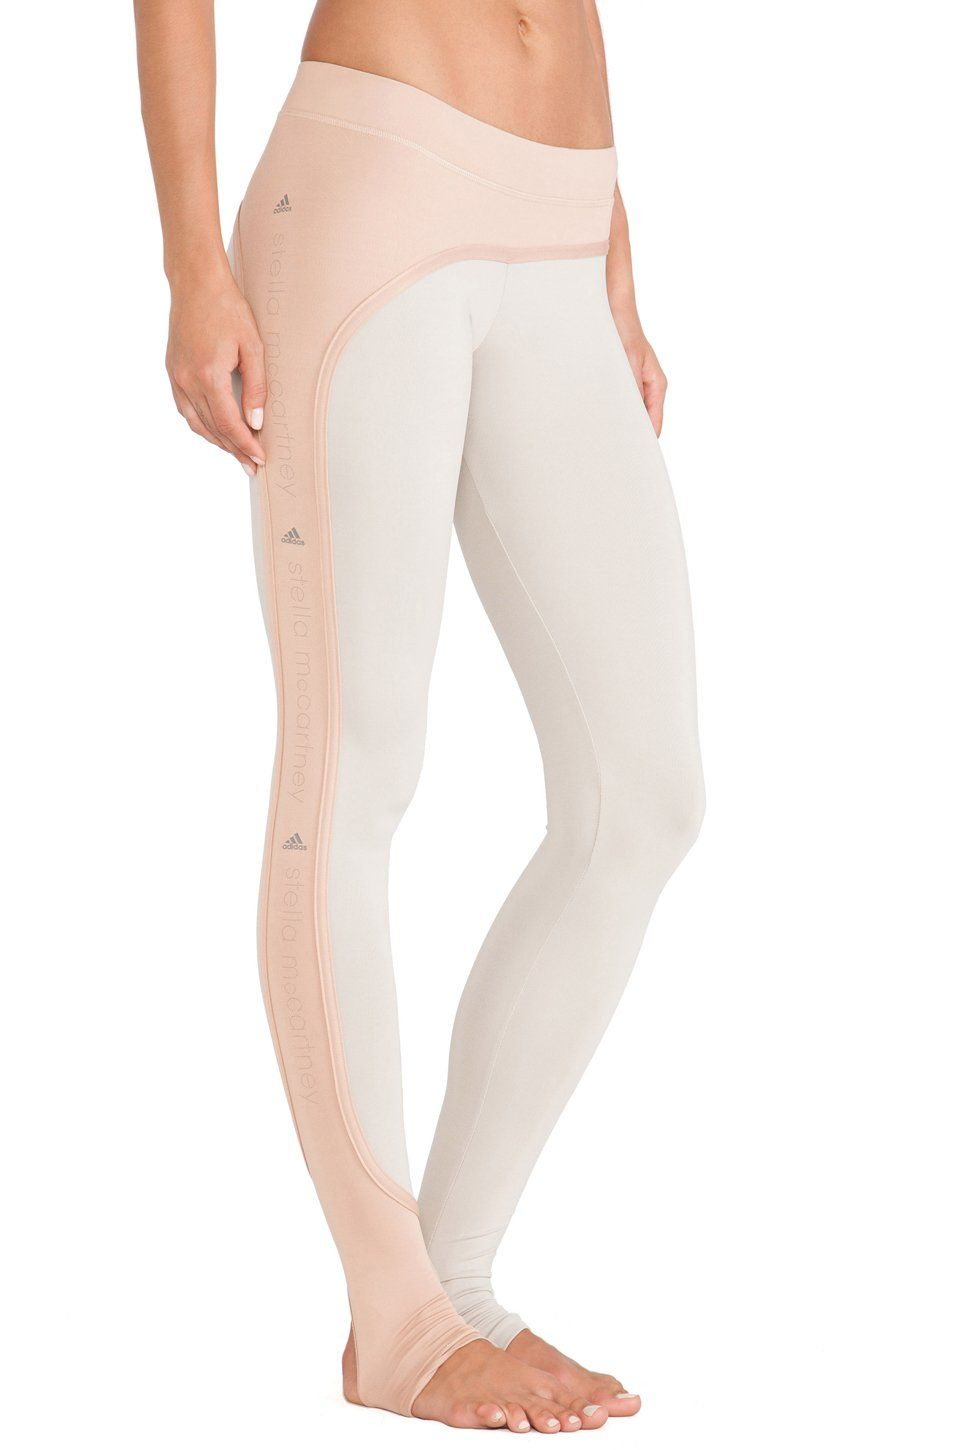 b6c92a605fb9b Adidas By Stella Mccartney Studio Performance Long Tights Shell Beige/Rose  Tan at Amazon Women's Clothing store: